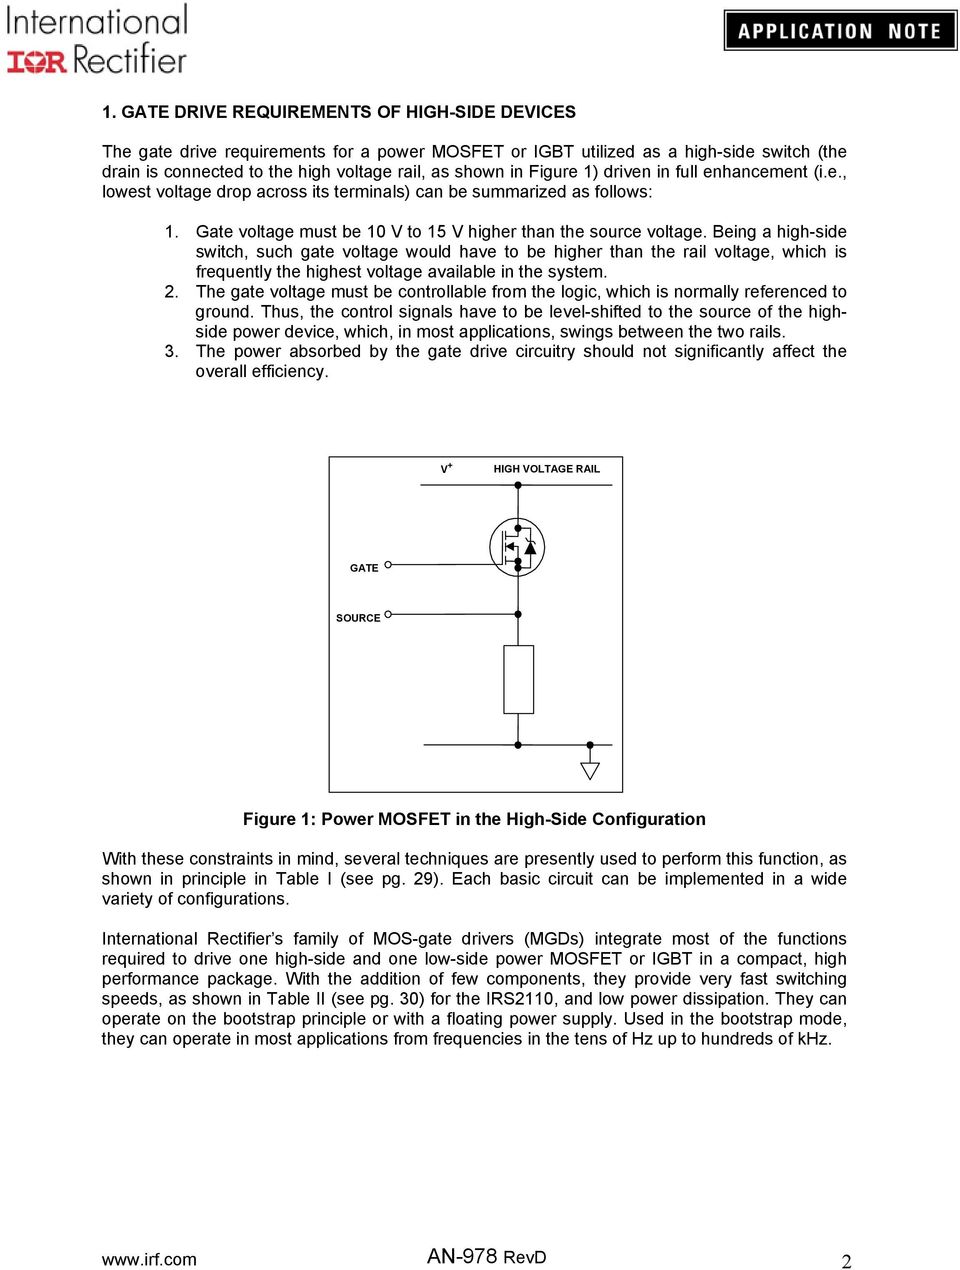 Application Note An Pdf Negative Voltage Reference Circuit 2 Basiccircuit Diagram Being A High Side Switch Such Gate Would Have To Be Higher Than